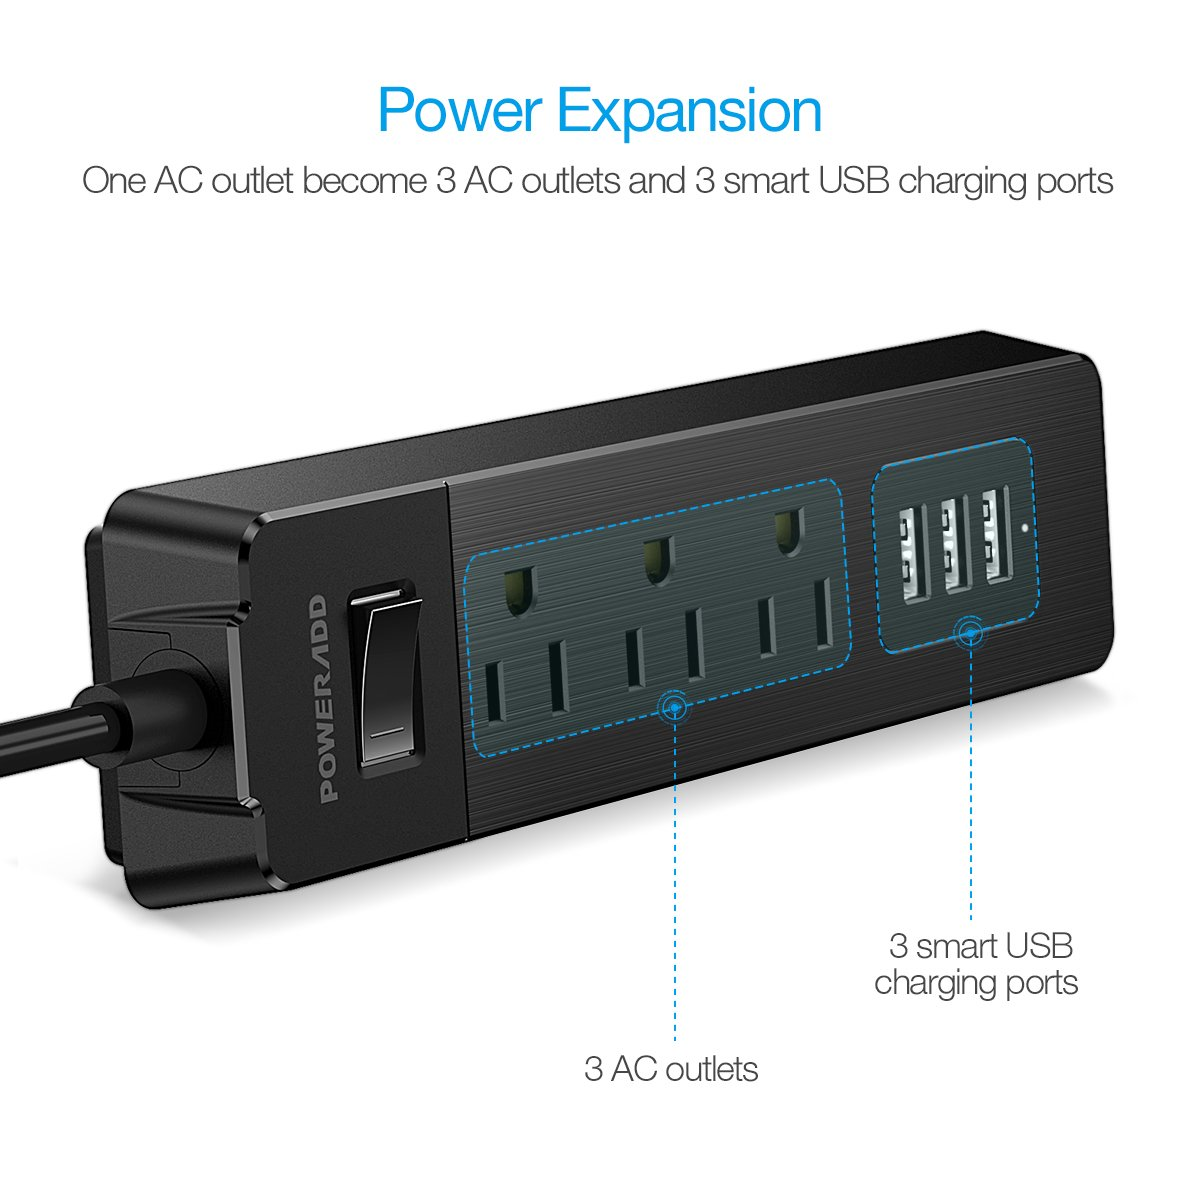 Poweradd 3-Outlet Surge Protector Power Strip 1250W with 3 Smart USB Charging Ports and 5ft Heavy Extension Cord, Charging Station ,300 Joules - Black